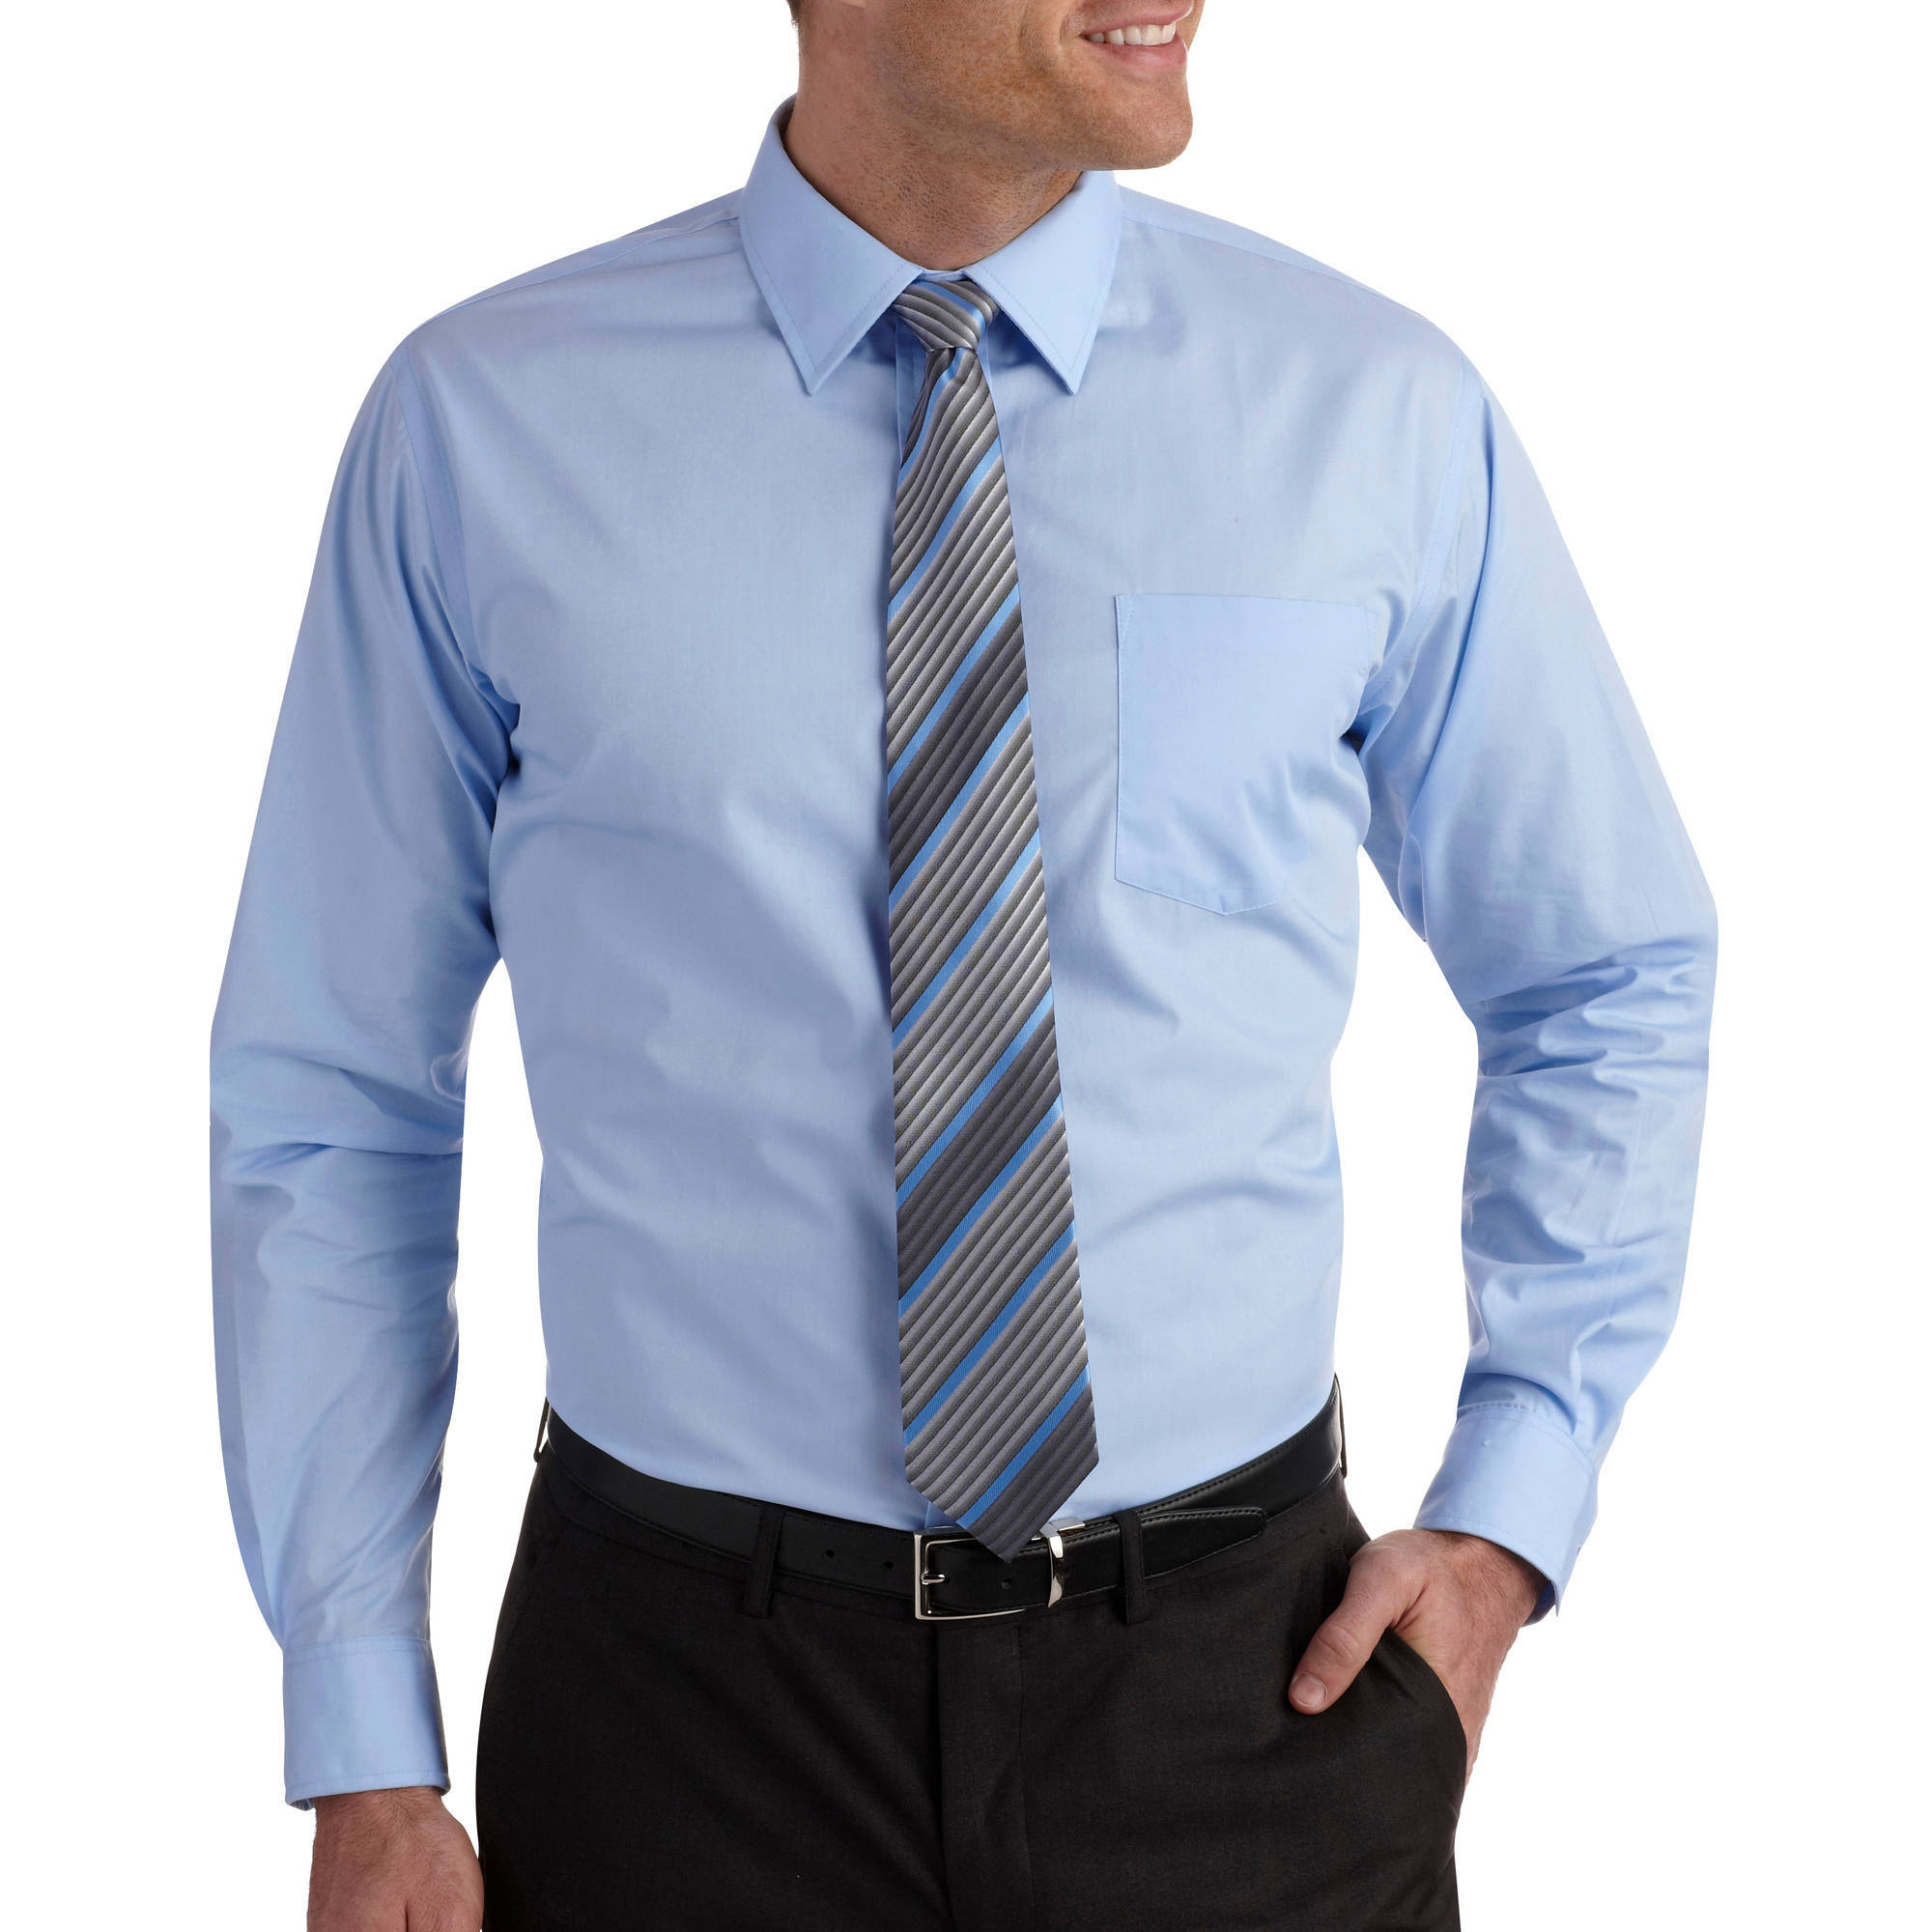 Ties Boys' Suits & Boys' Dress Shirts at Macy's come in a variety of styles and sizes. Shop Ties Boys' Suits & Boys' Dress Shirts at Macy's and find the latest styles for .